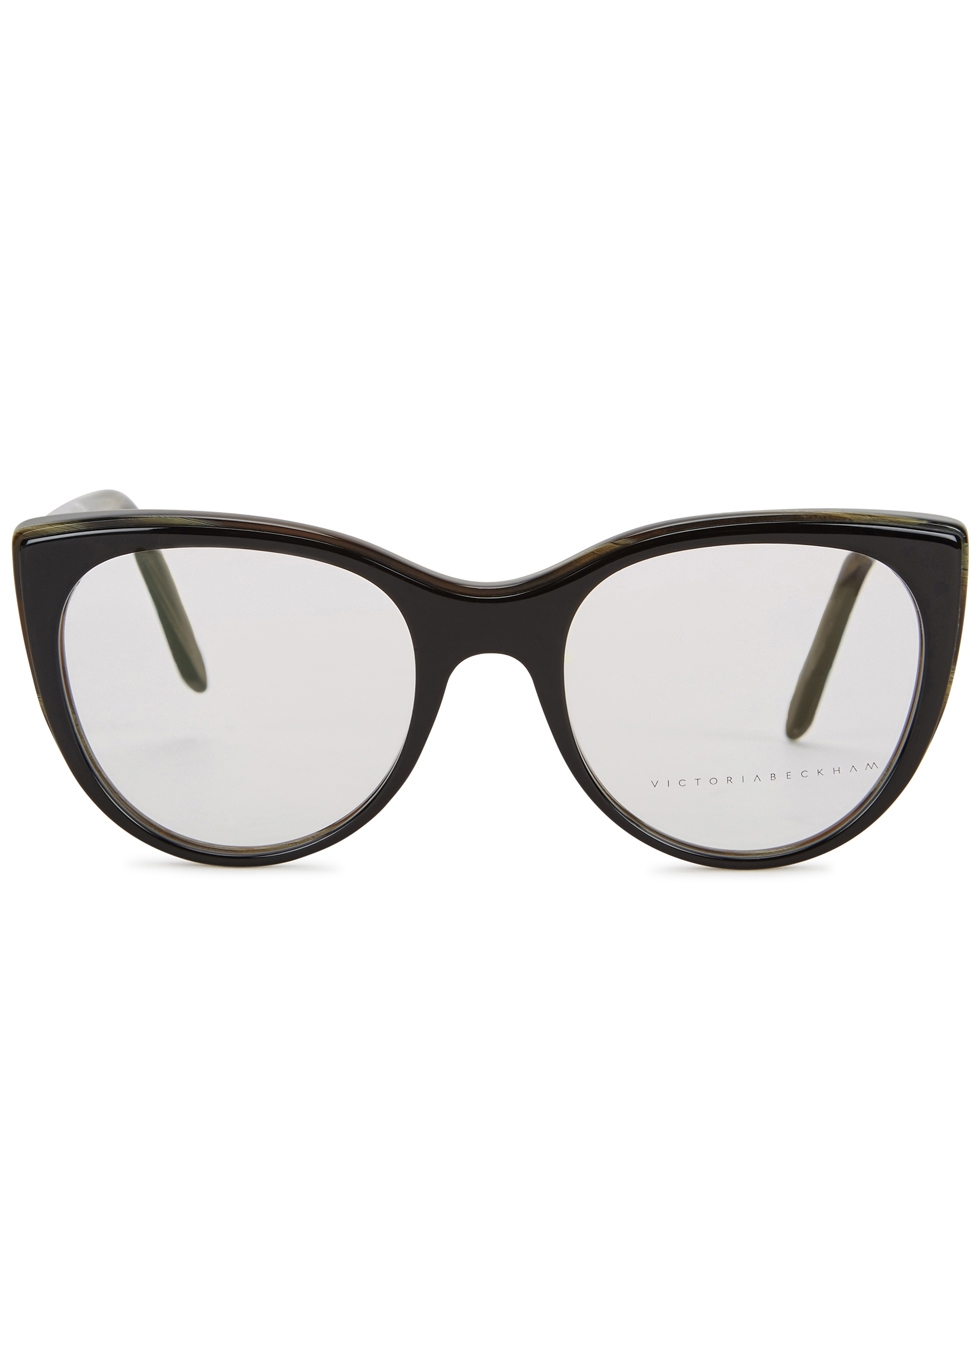 Layered Kitten black cat-eye optical glasses - Victoria Beckham